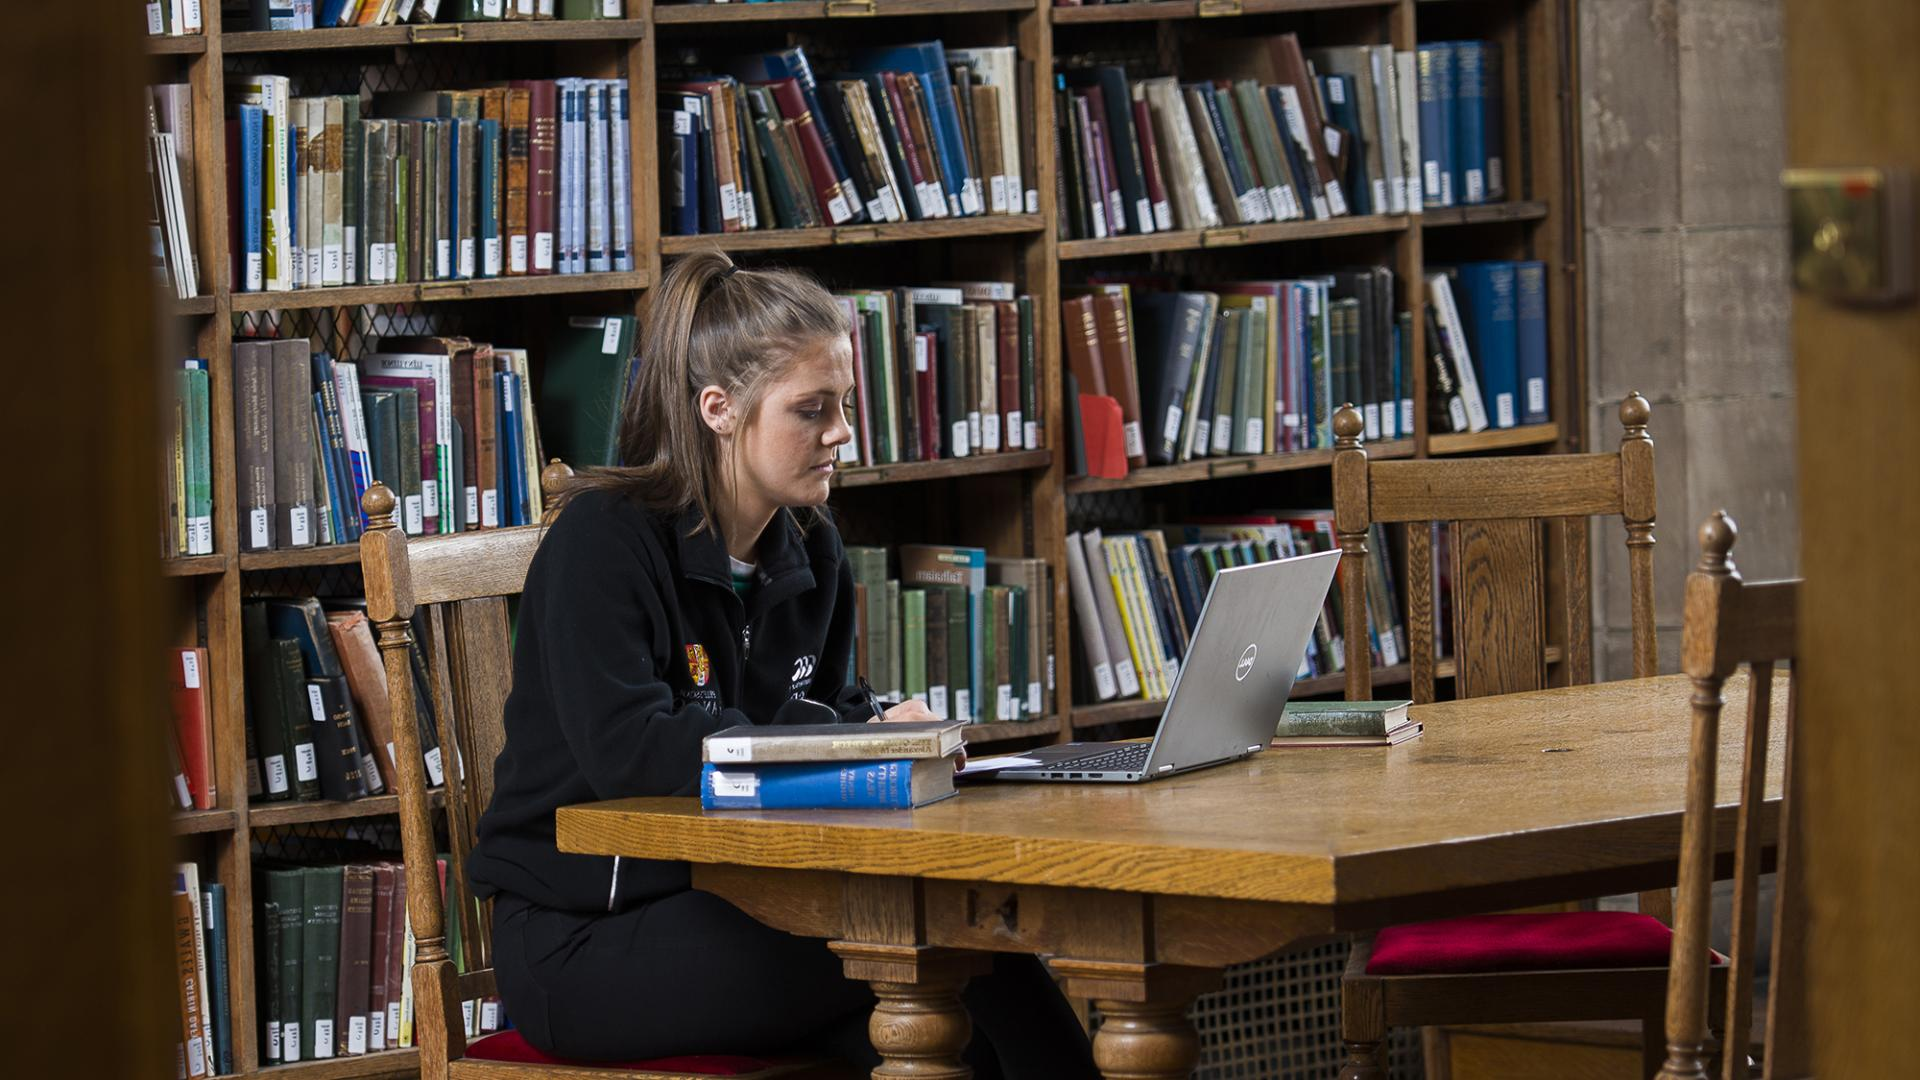 A student at work in the Library, books and laptop on the table